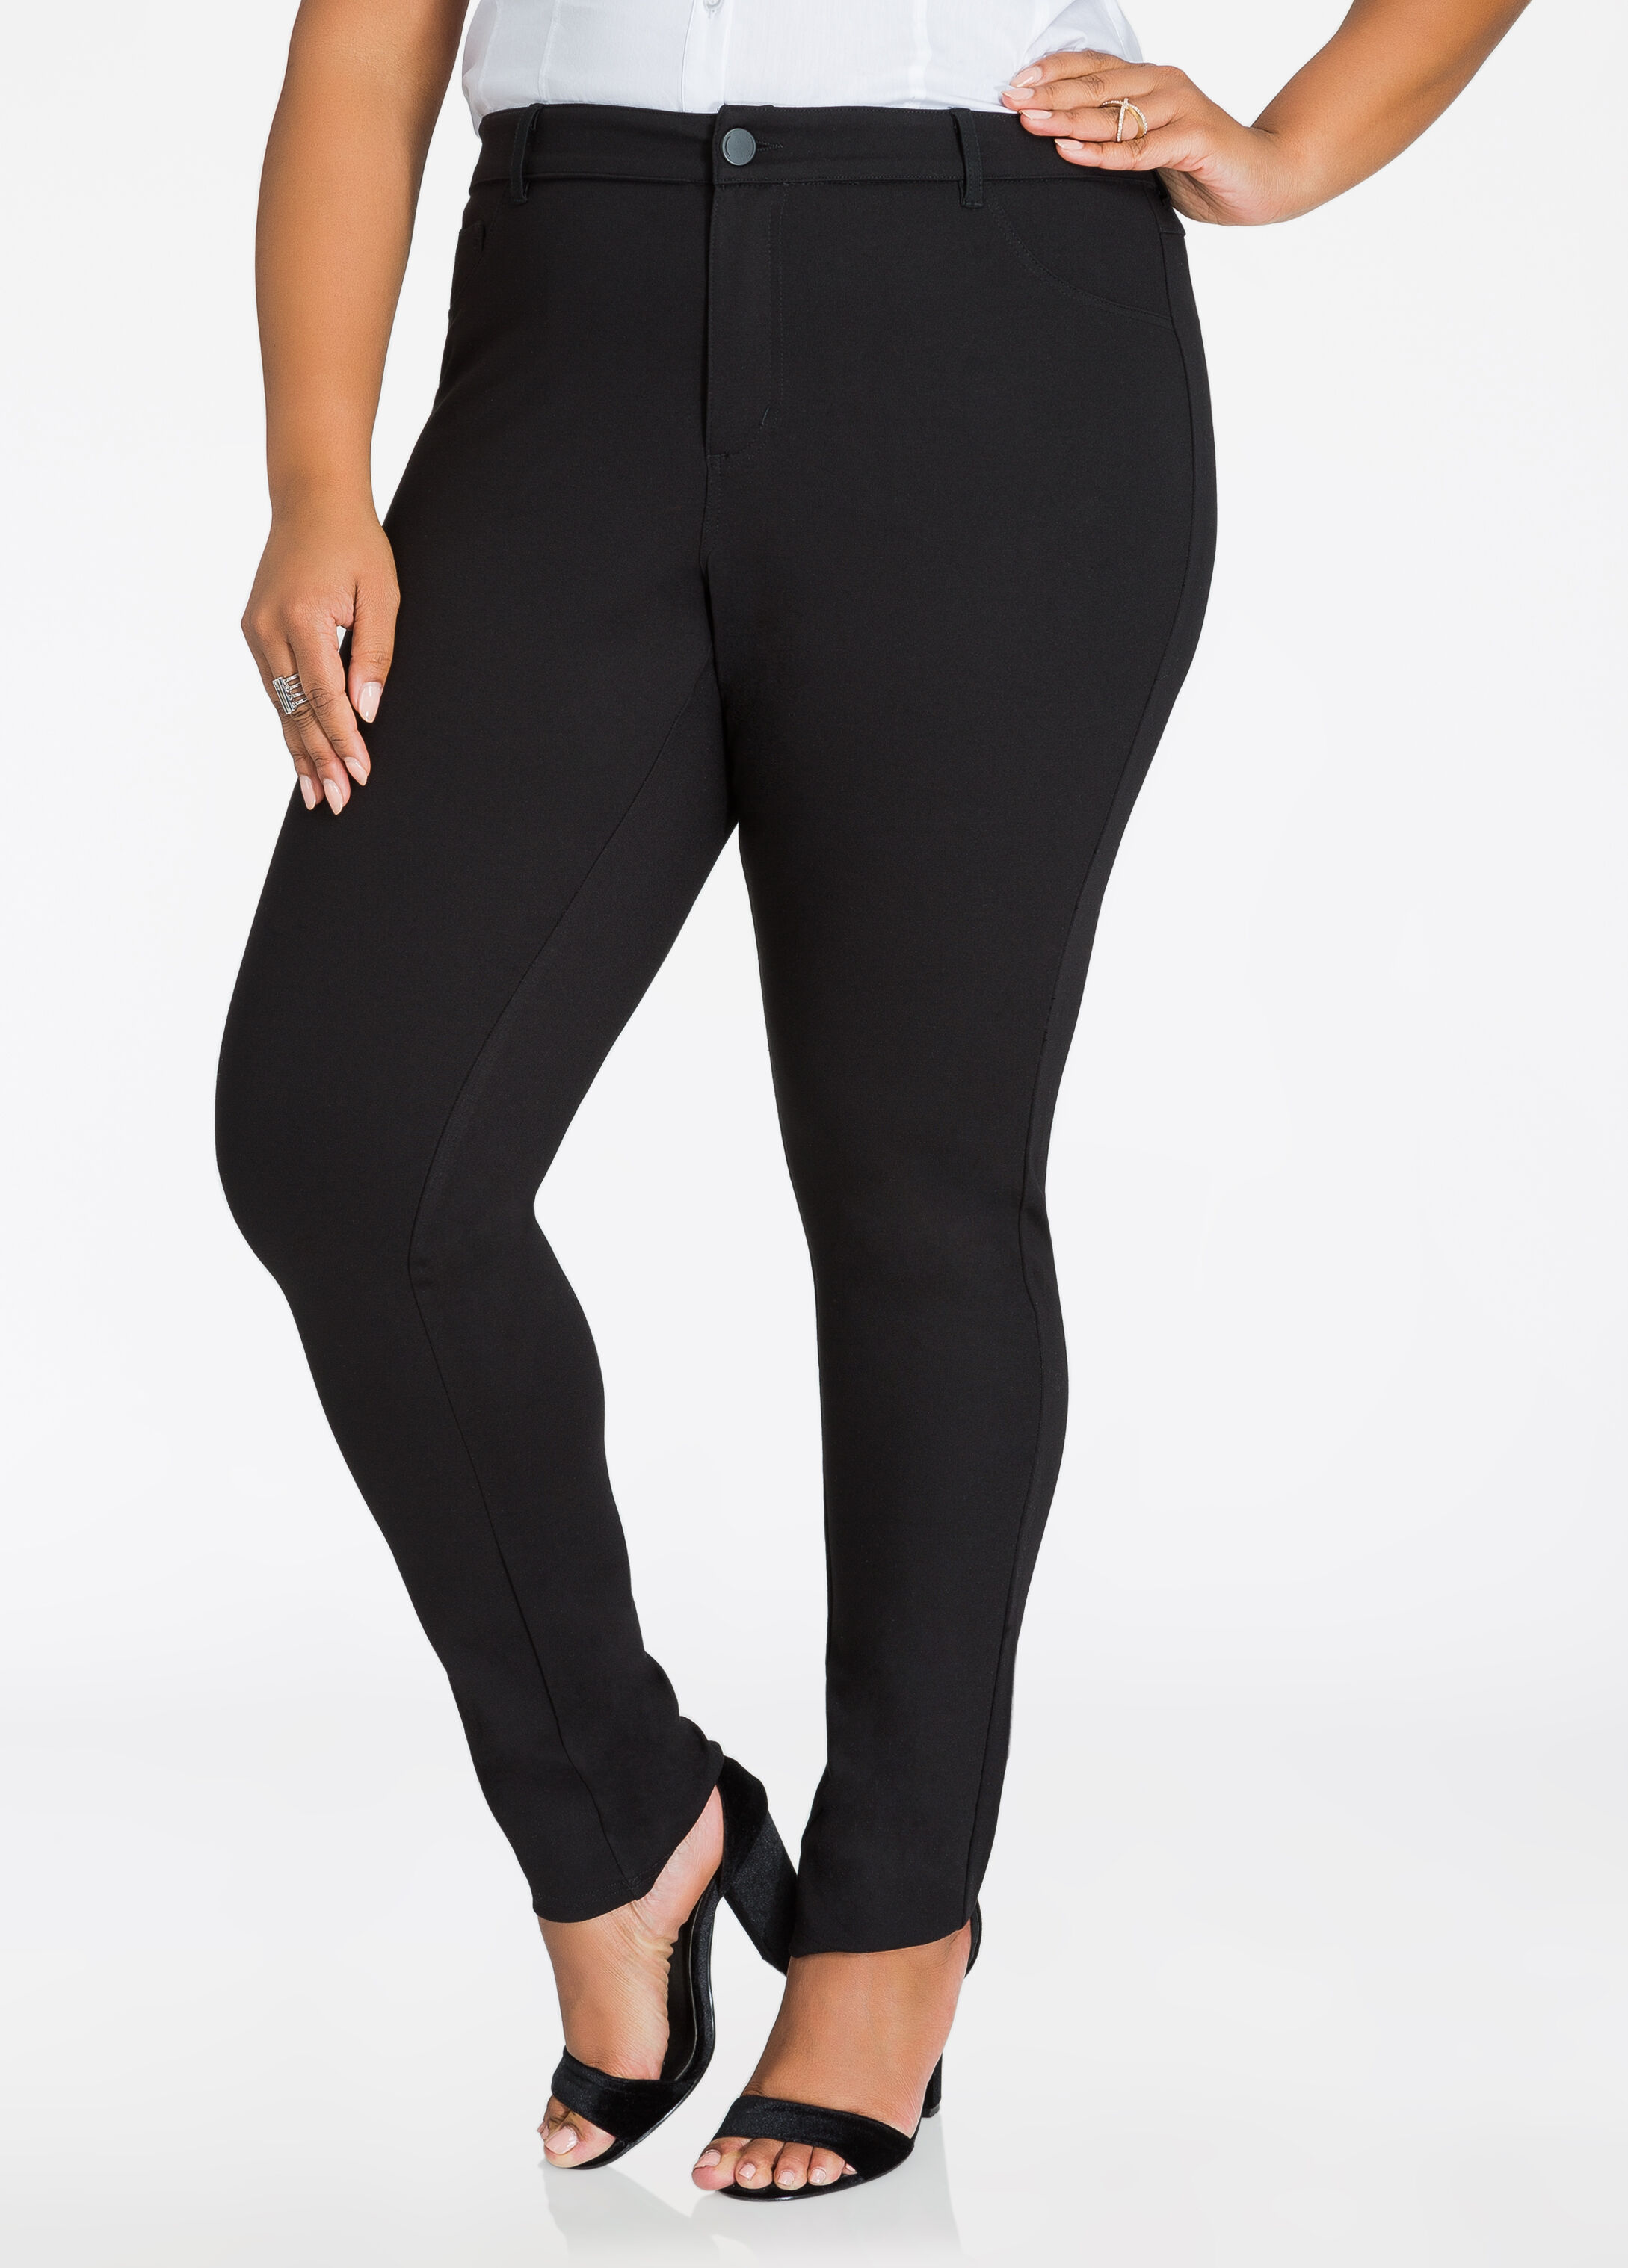 Basic 5 Pocket Ponte Skinny Pant Black - Bottoms